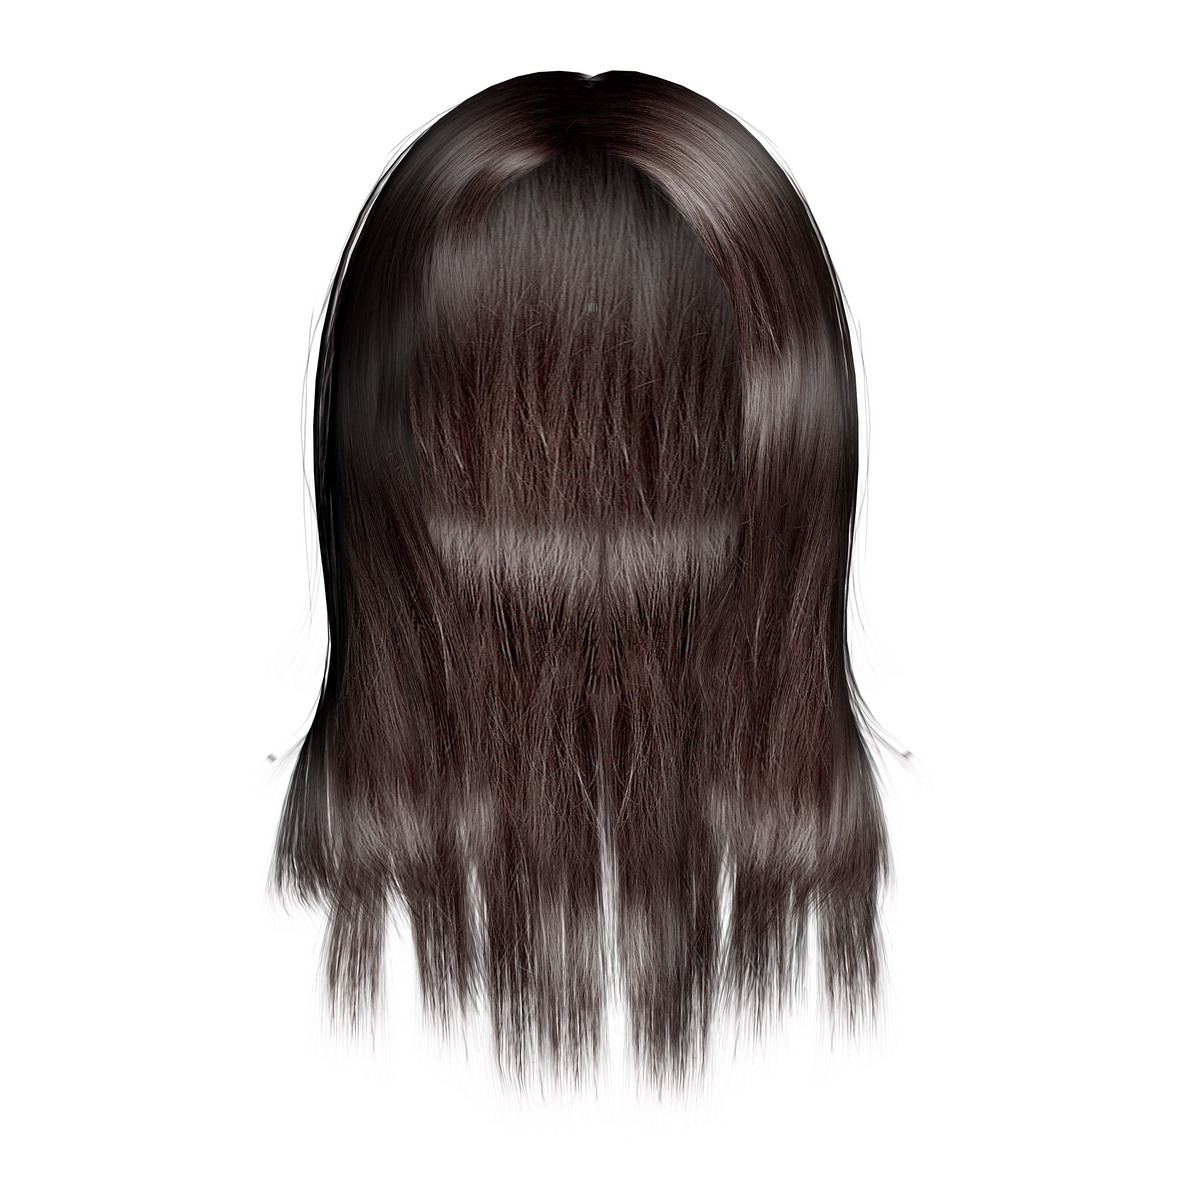 Female Hair 01